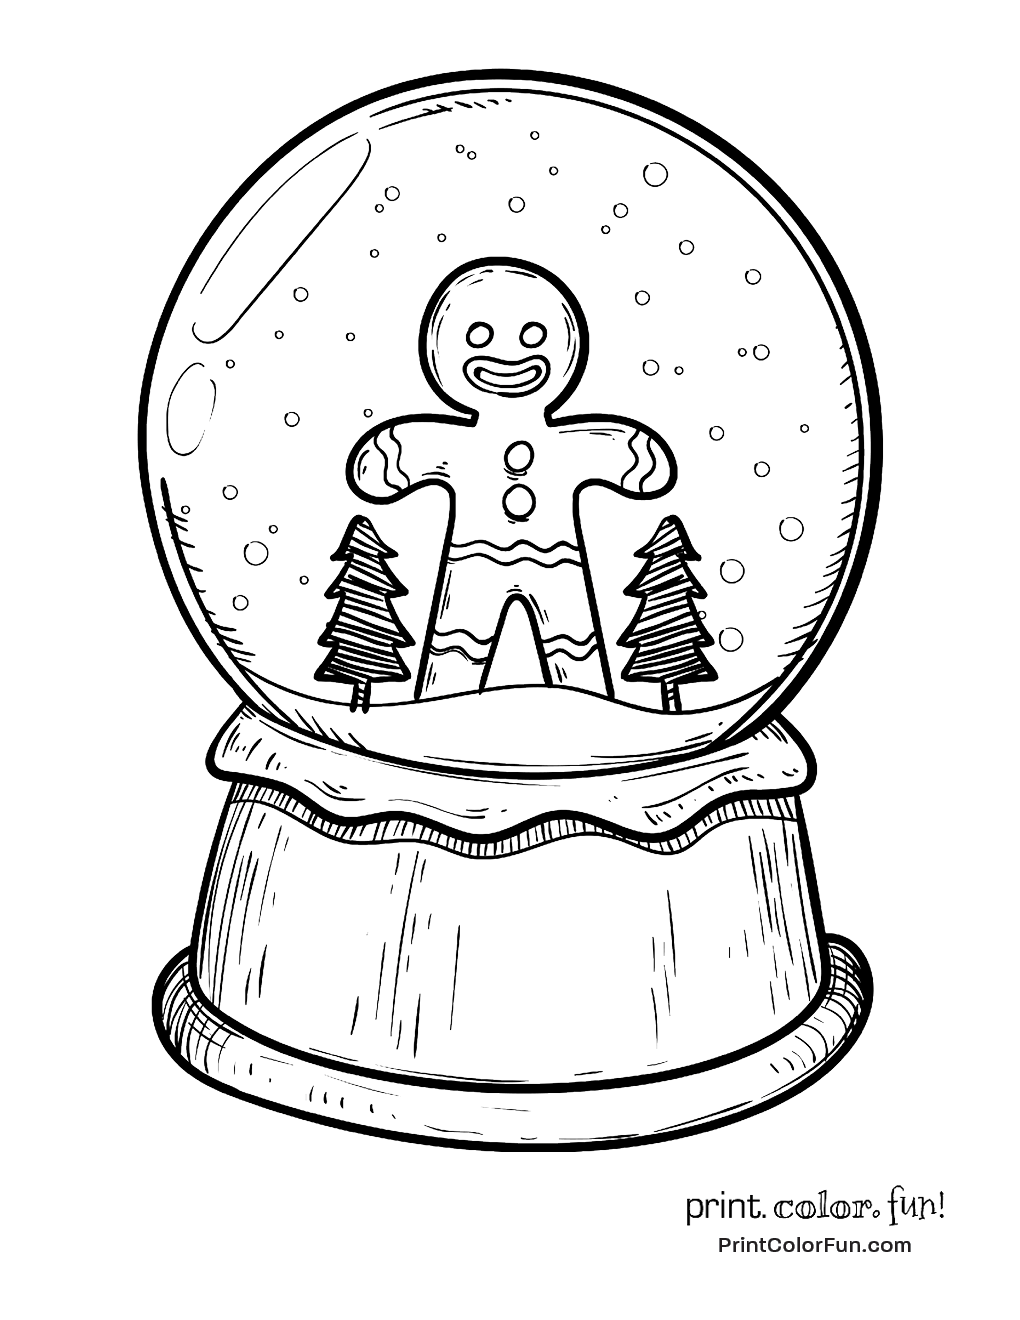 1020x1320 Christmas Snow Globe With Gingerbread Man Coloring Page